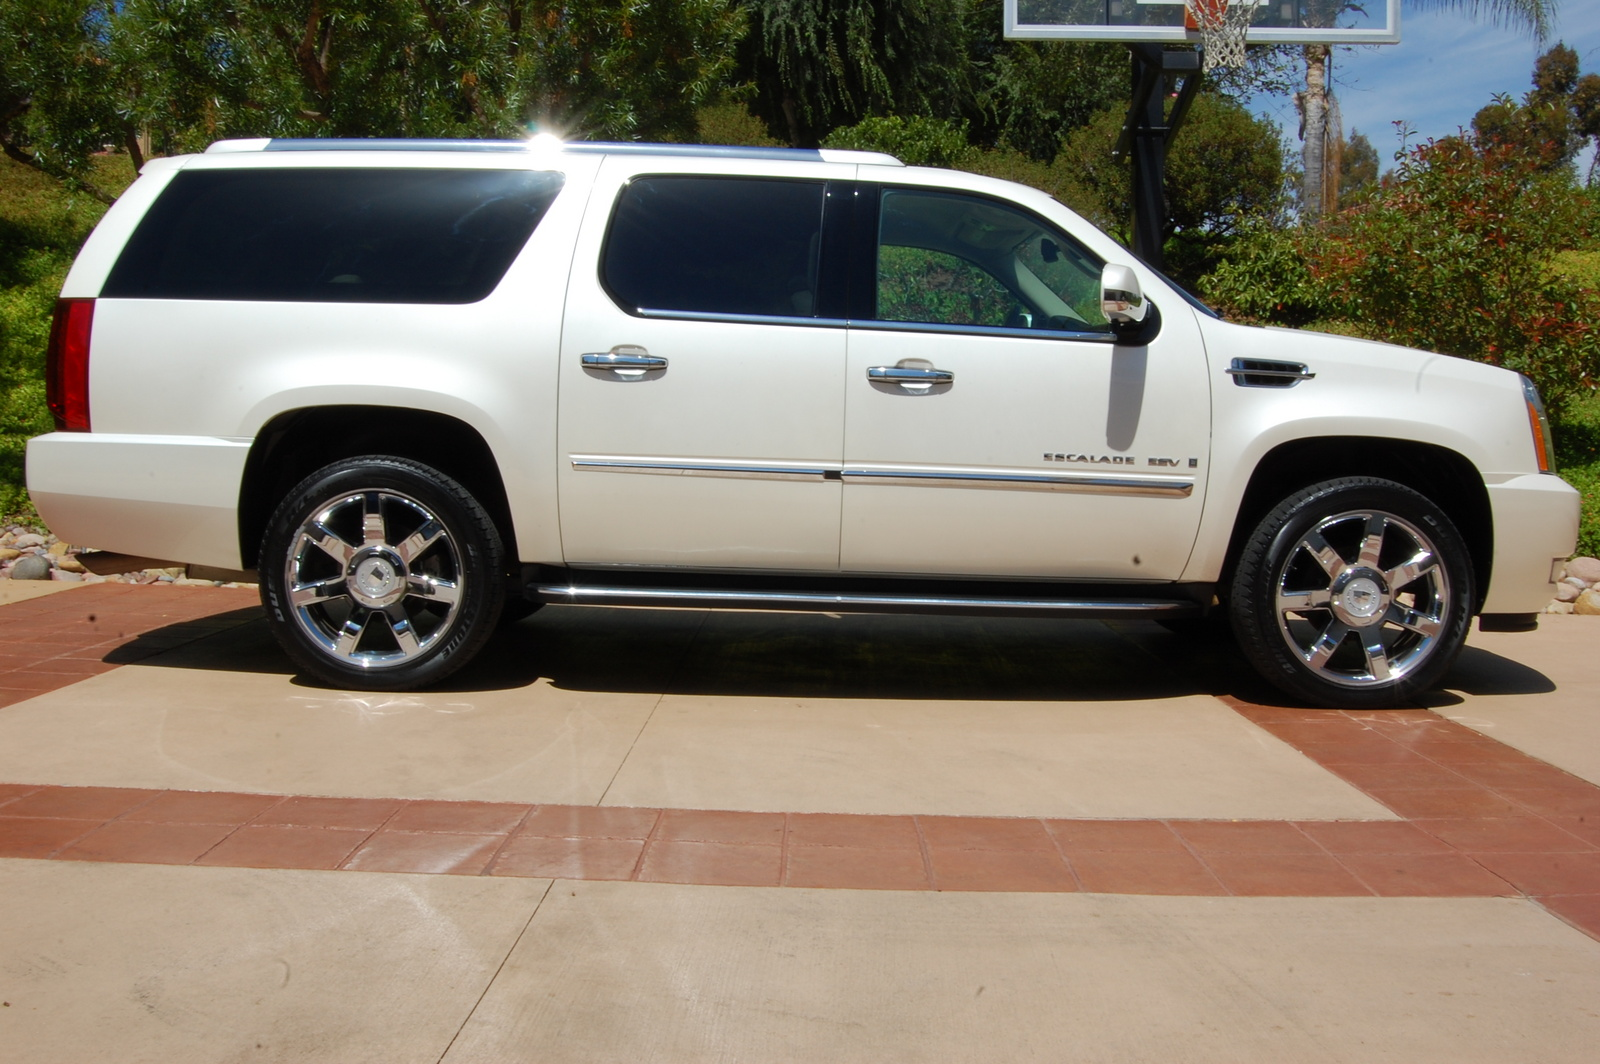 2007 cadillac escalade esv exterior pictures cargurus. Cars Review. Best American Auto & Cars Review